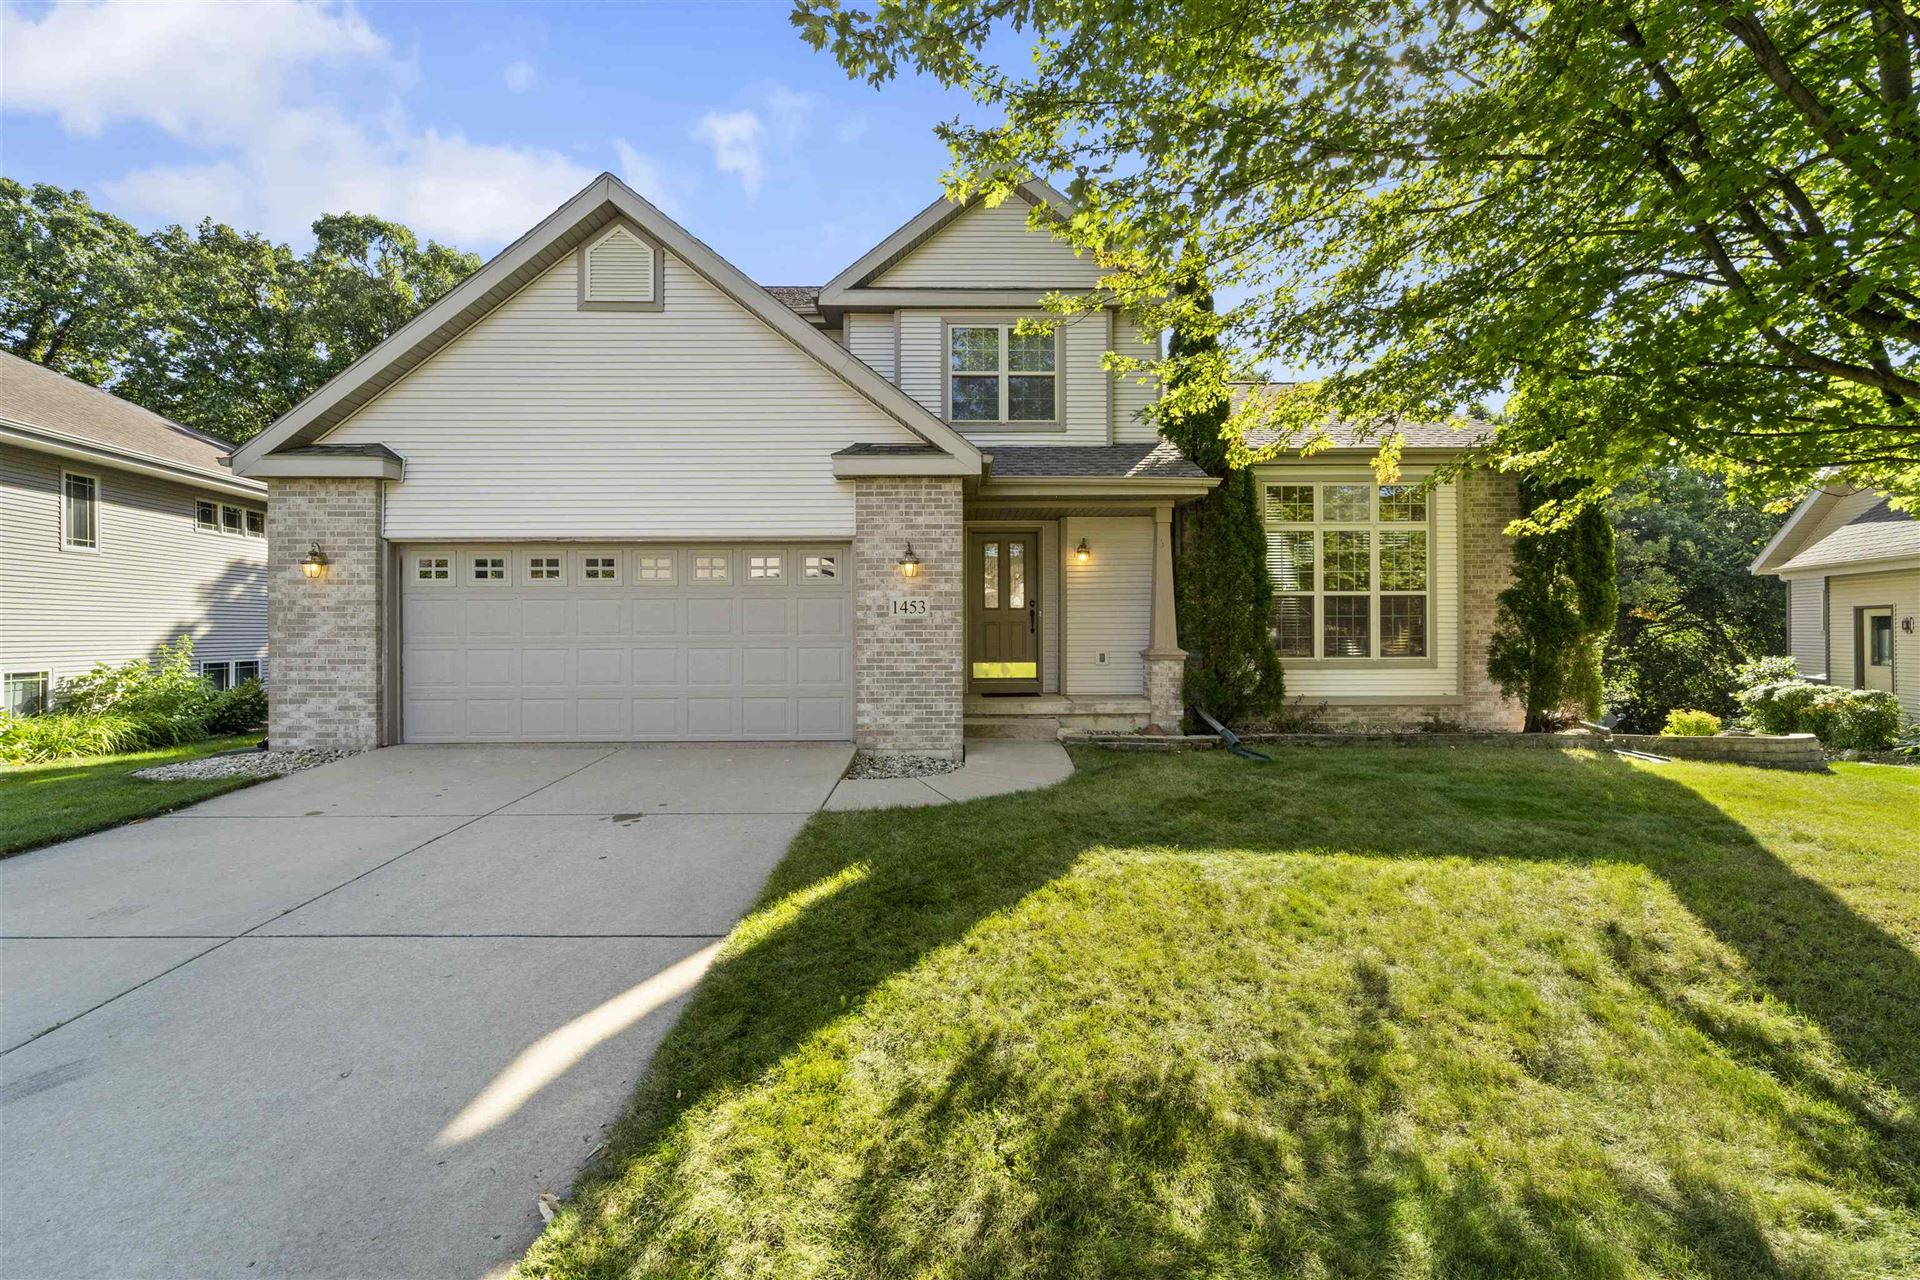 1453 Starr Grass Dr, Madison, WI 53719 - #: 1920839